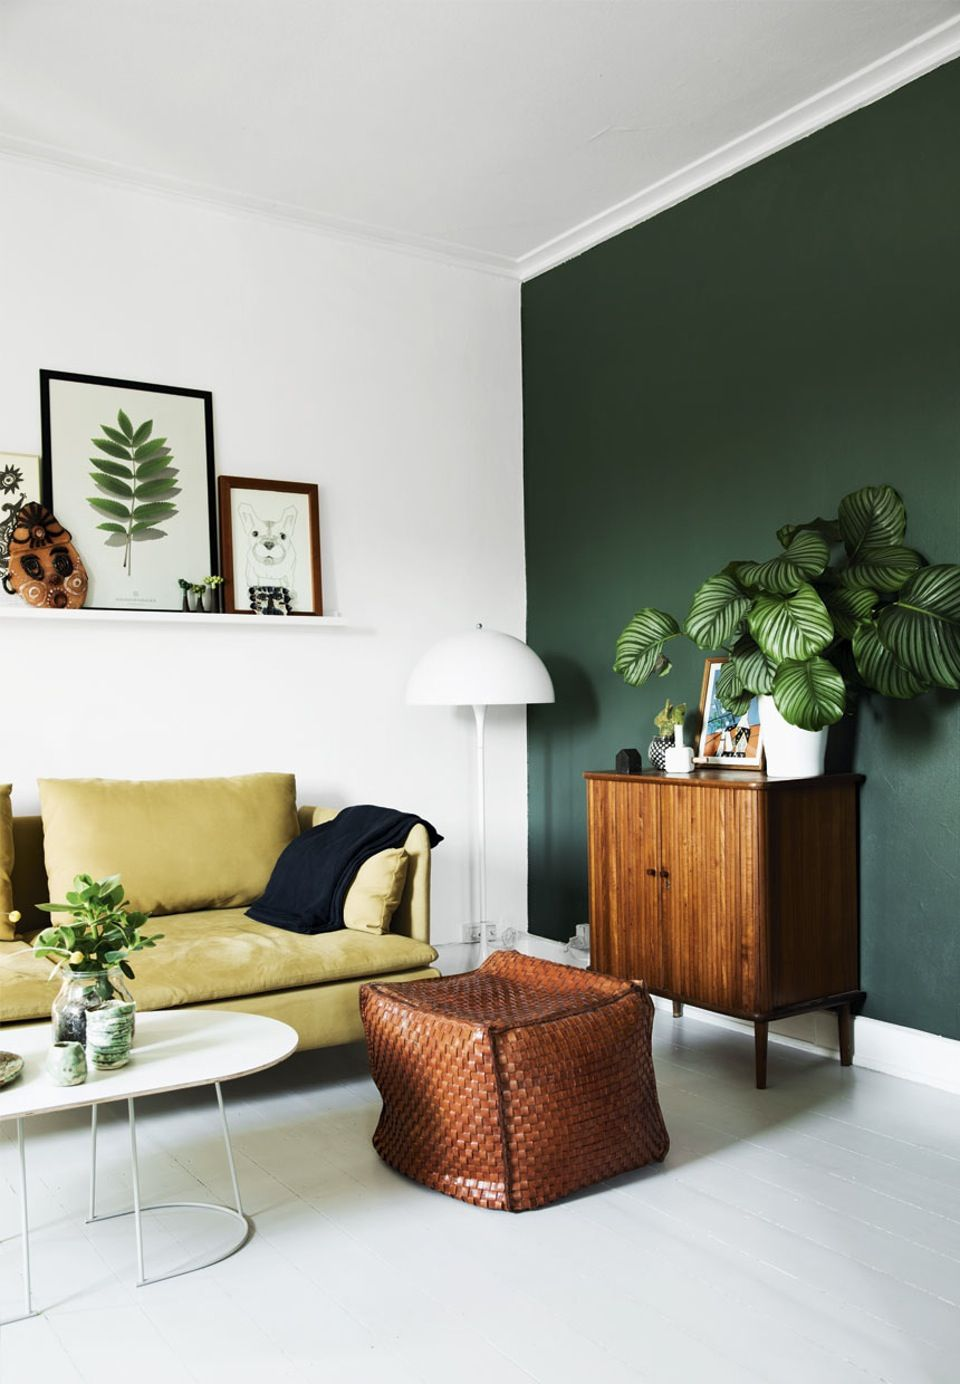 15 Ideas For Decorating With Hunter Green | Grün, Wohnwelt und Wandfarbe